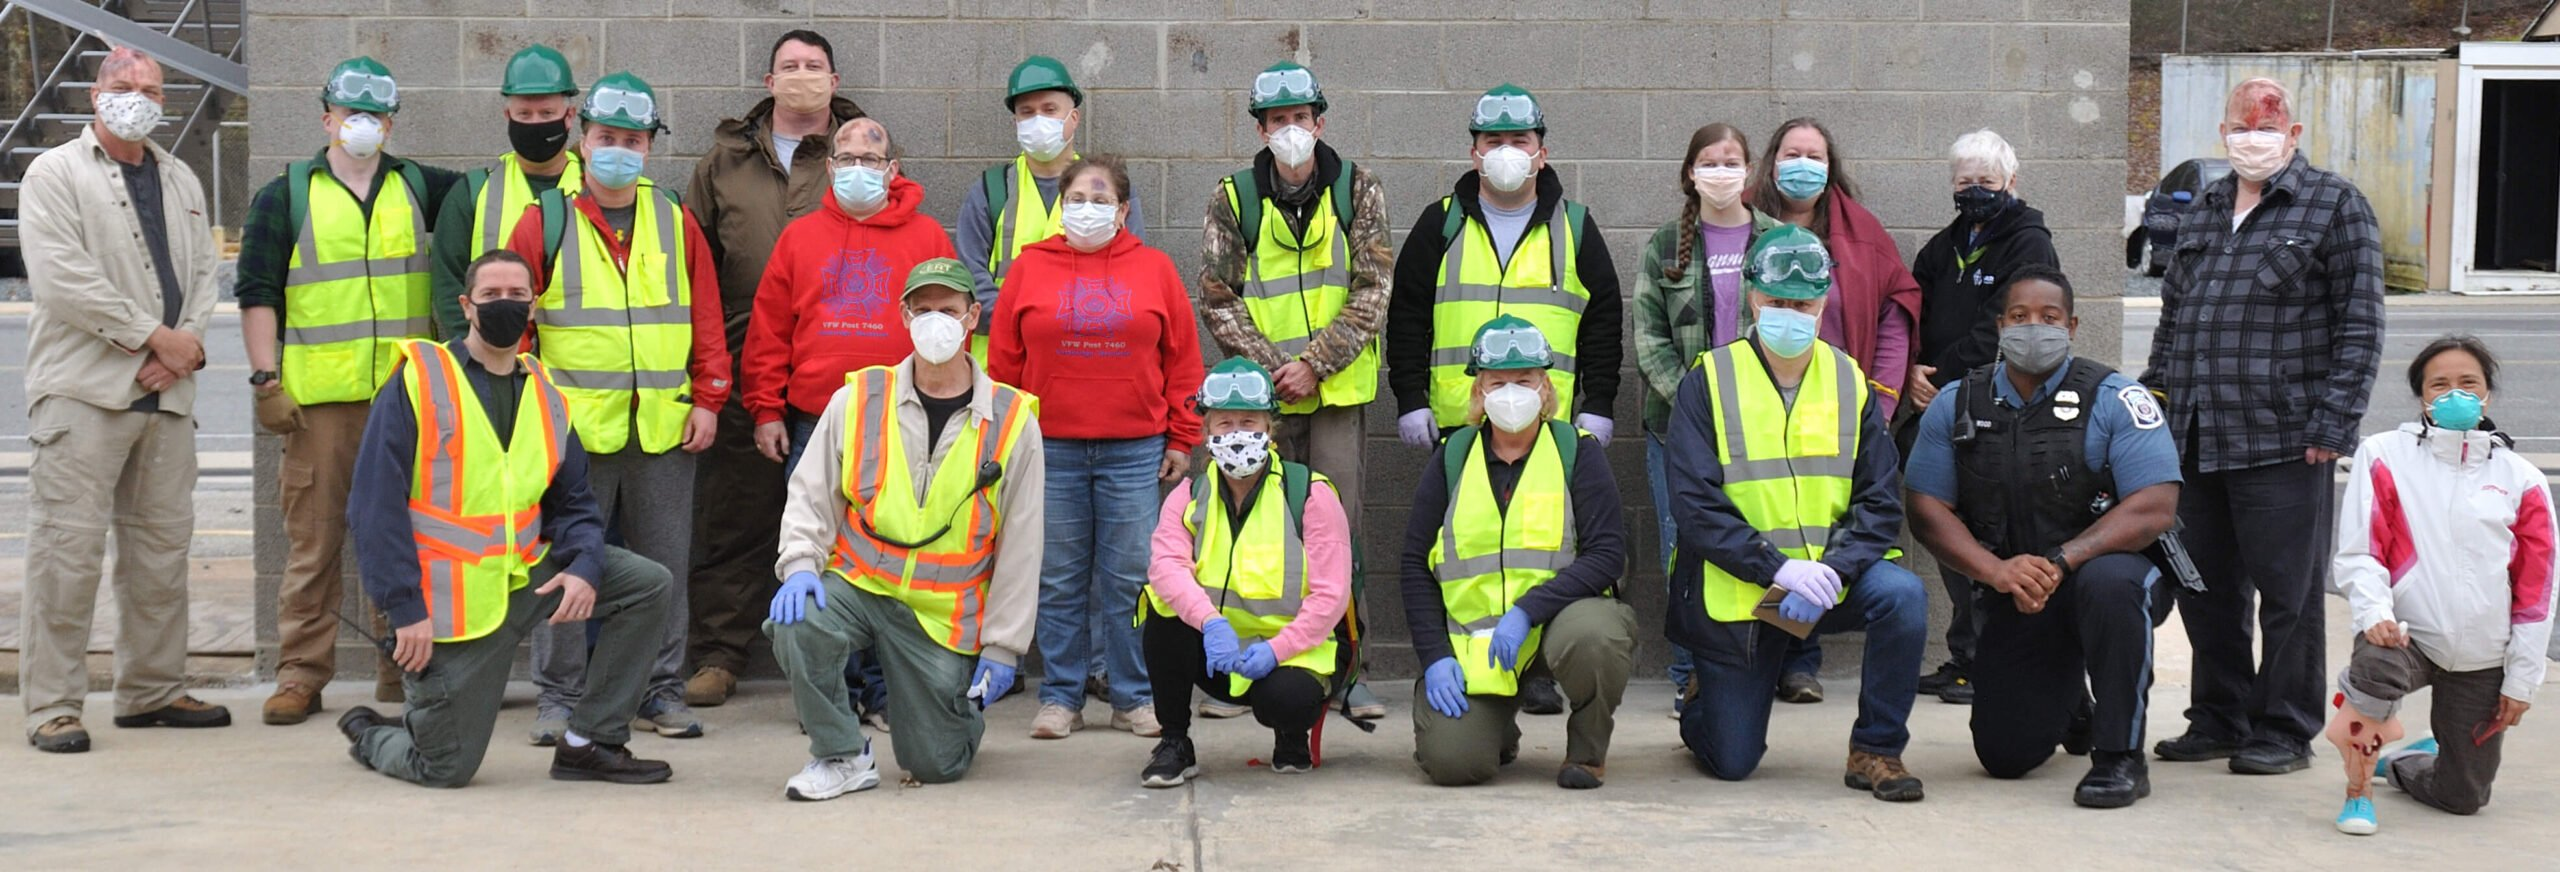 Members of the CERT Basic Class from November 2020 stand with their instructors against a wall at the fire training academy. Trainees are wearing their CERT vests and helmets. All participants are wearing masks.